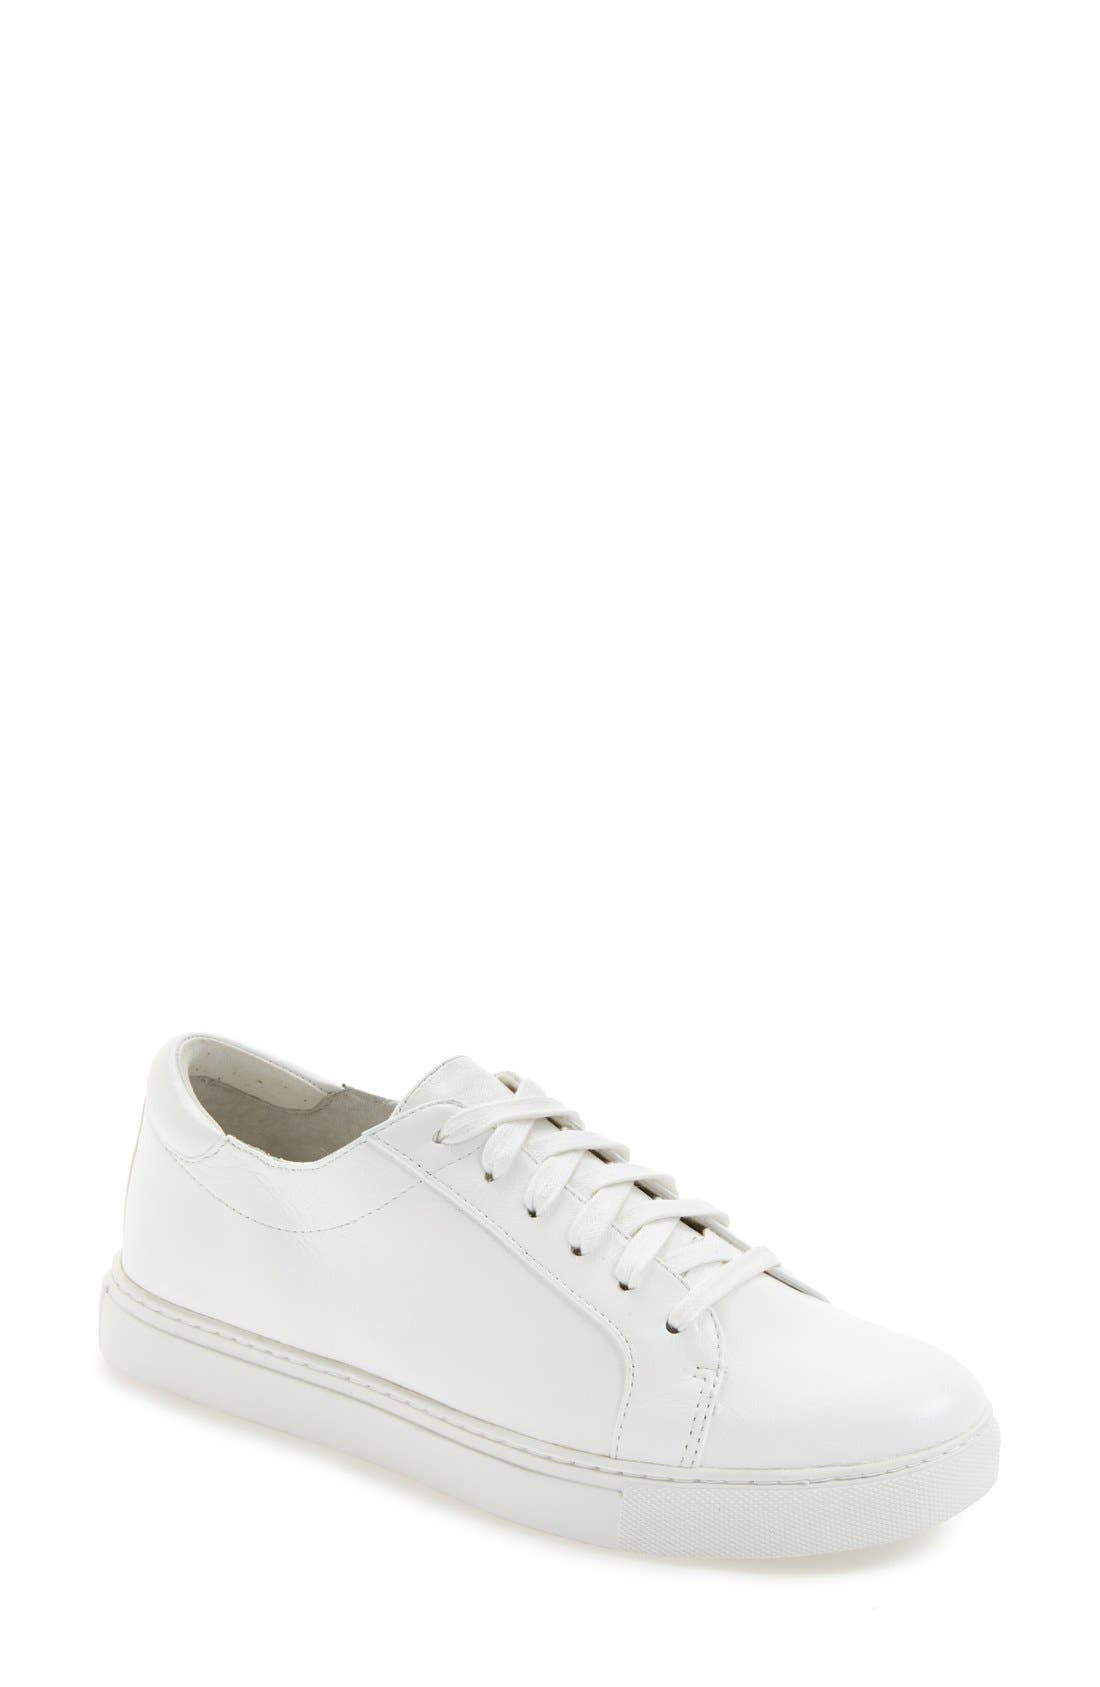 'Kam' Sneaker,                             Main thumbnail 1, color,                             WHITE